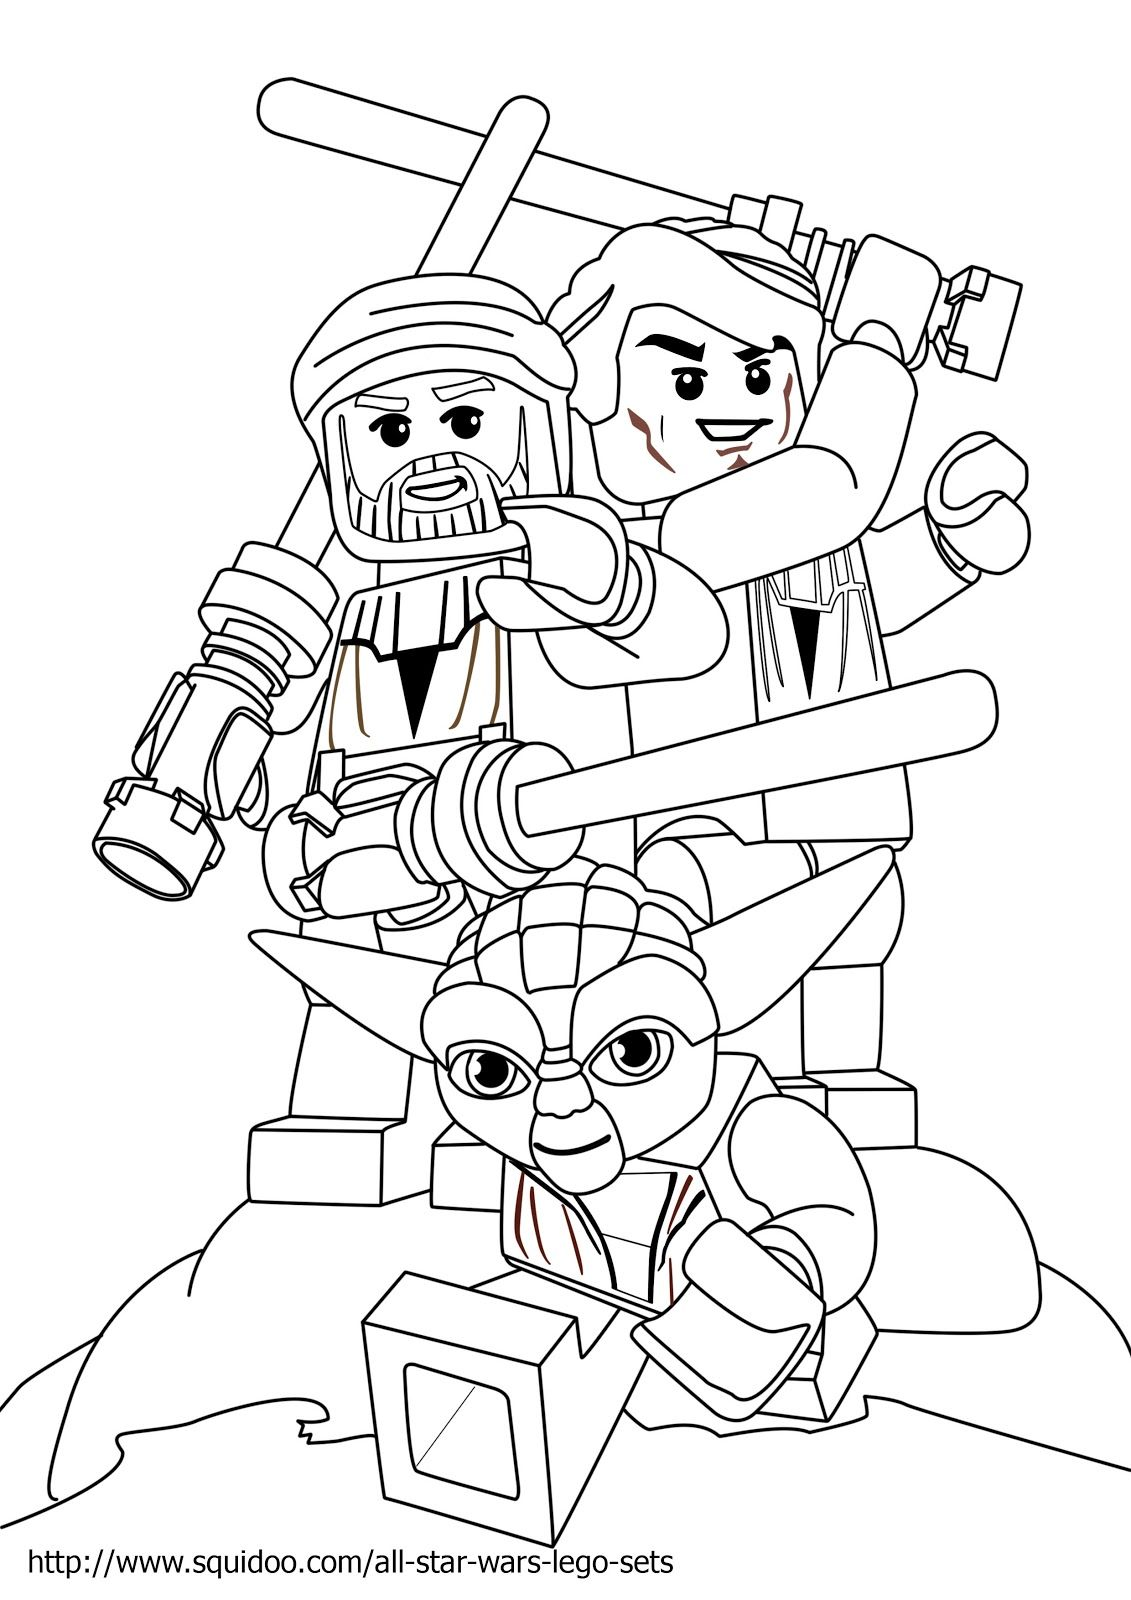 Lego Star Wars Yoda Coloring Pages Original Size 1131 X 1600 I